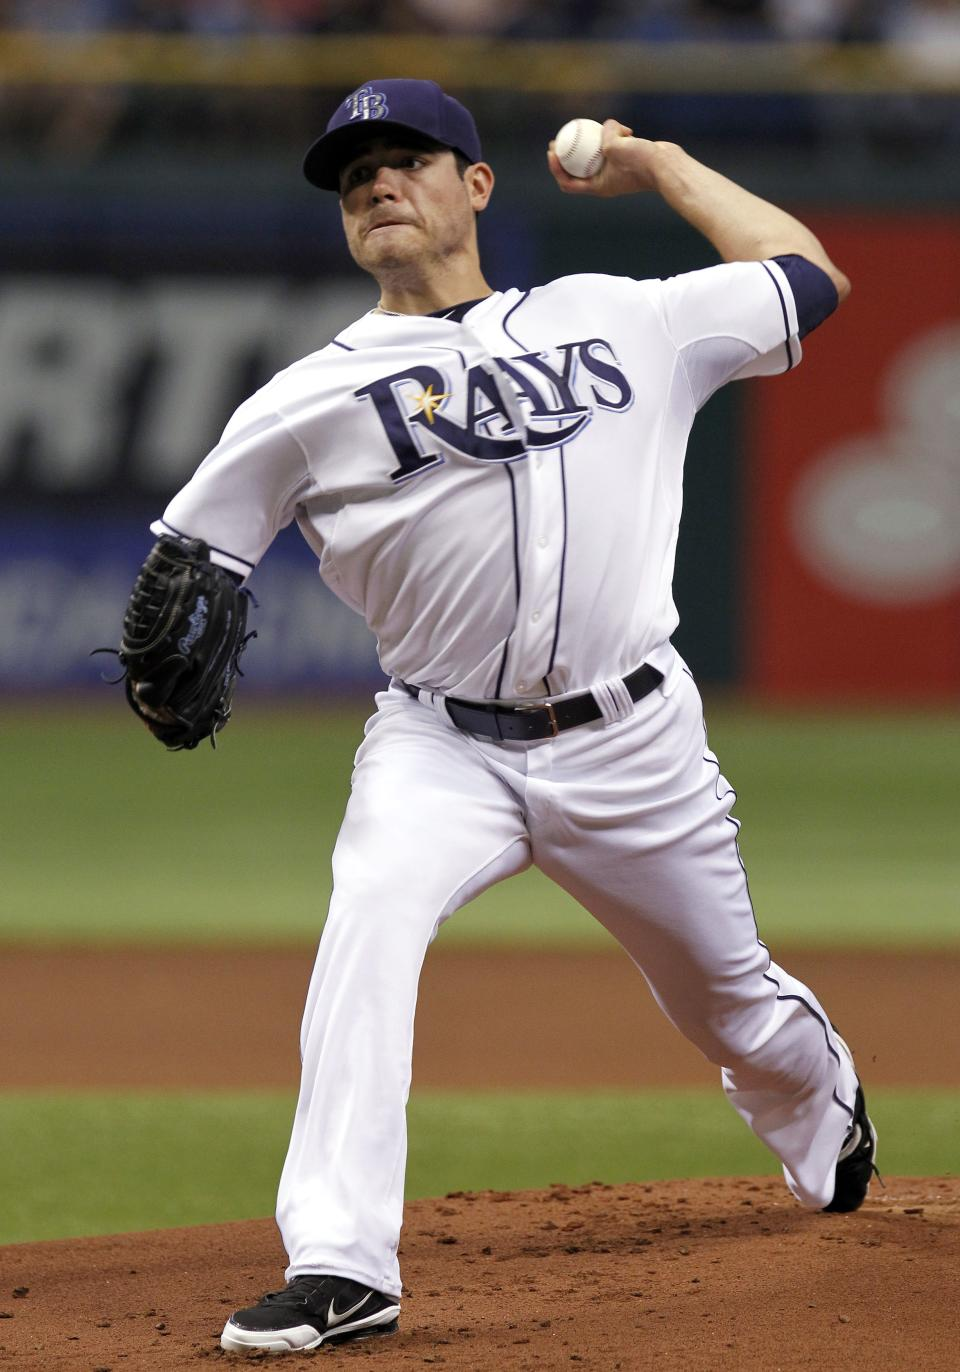 Tampa Bay Rays starting pitcher Matt Moore delivers to the Chicago White Sox during the first inning of a baseball game Monday, May 28, 2012, in St. Petersburg, Fla. (AP Photo/Chris O'Meara)